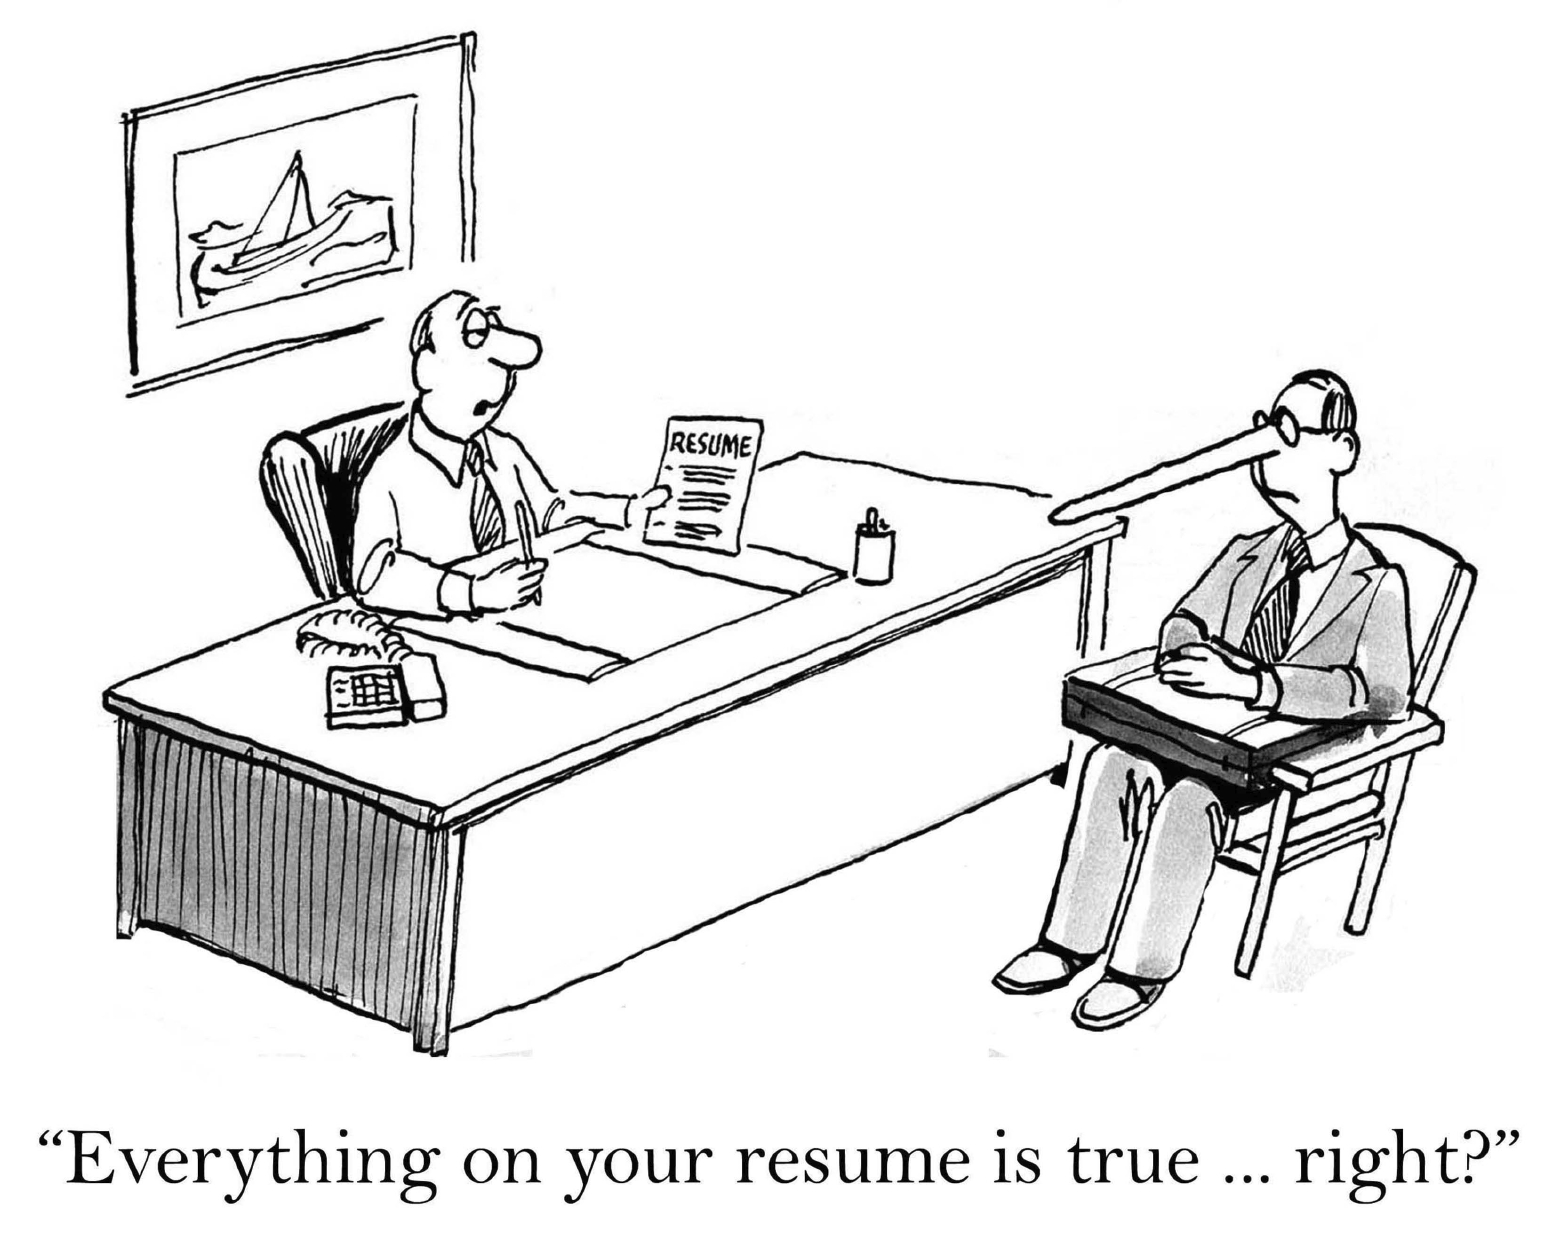 """Everything on your resume is true, right?"" (andrewgenn/iStock)"